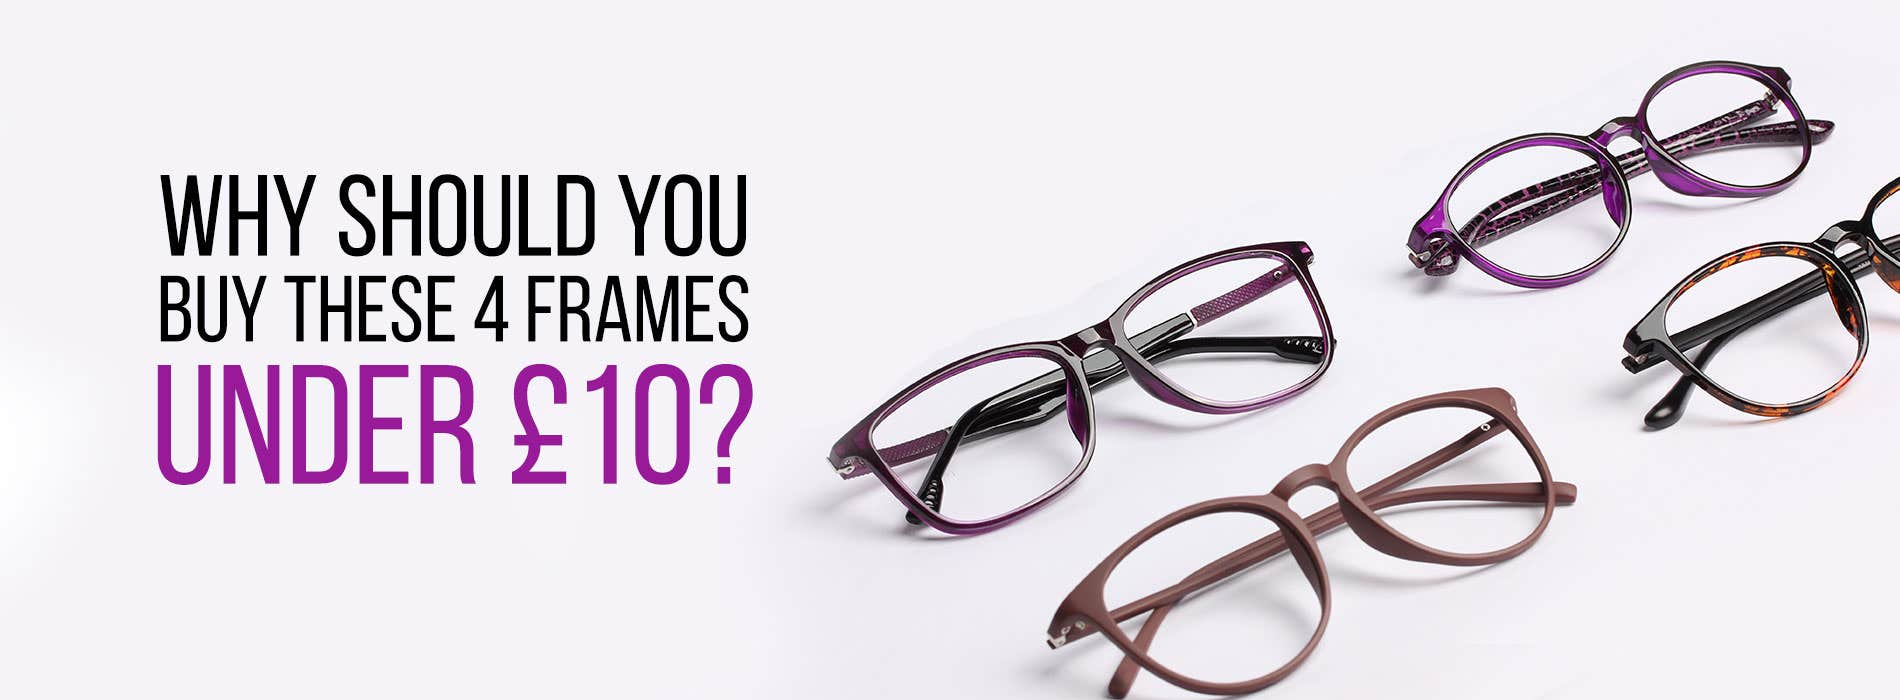 Why Should You Buy These 4 Frames Under £10?